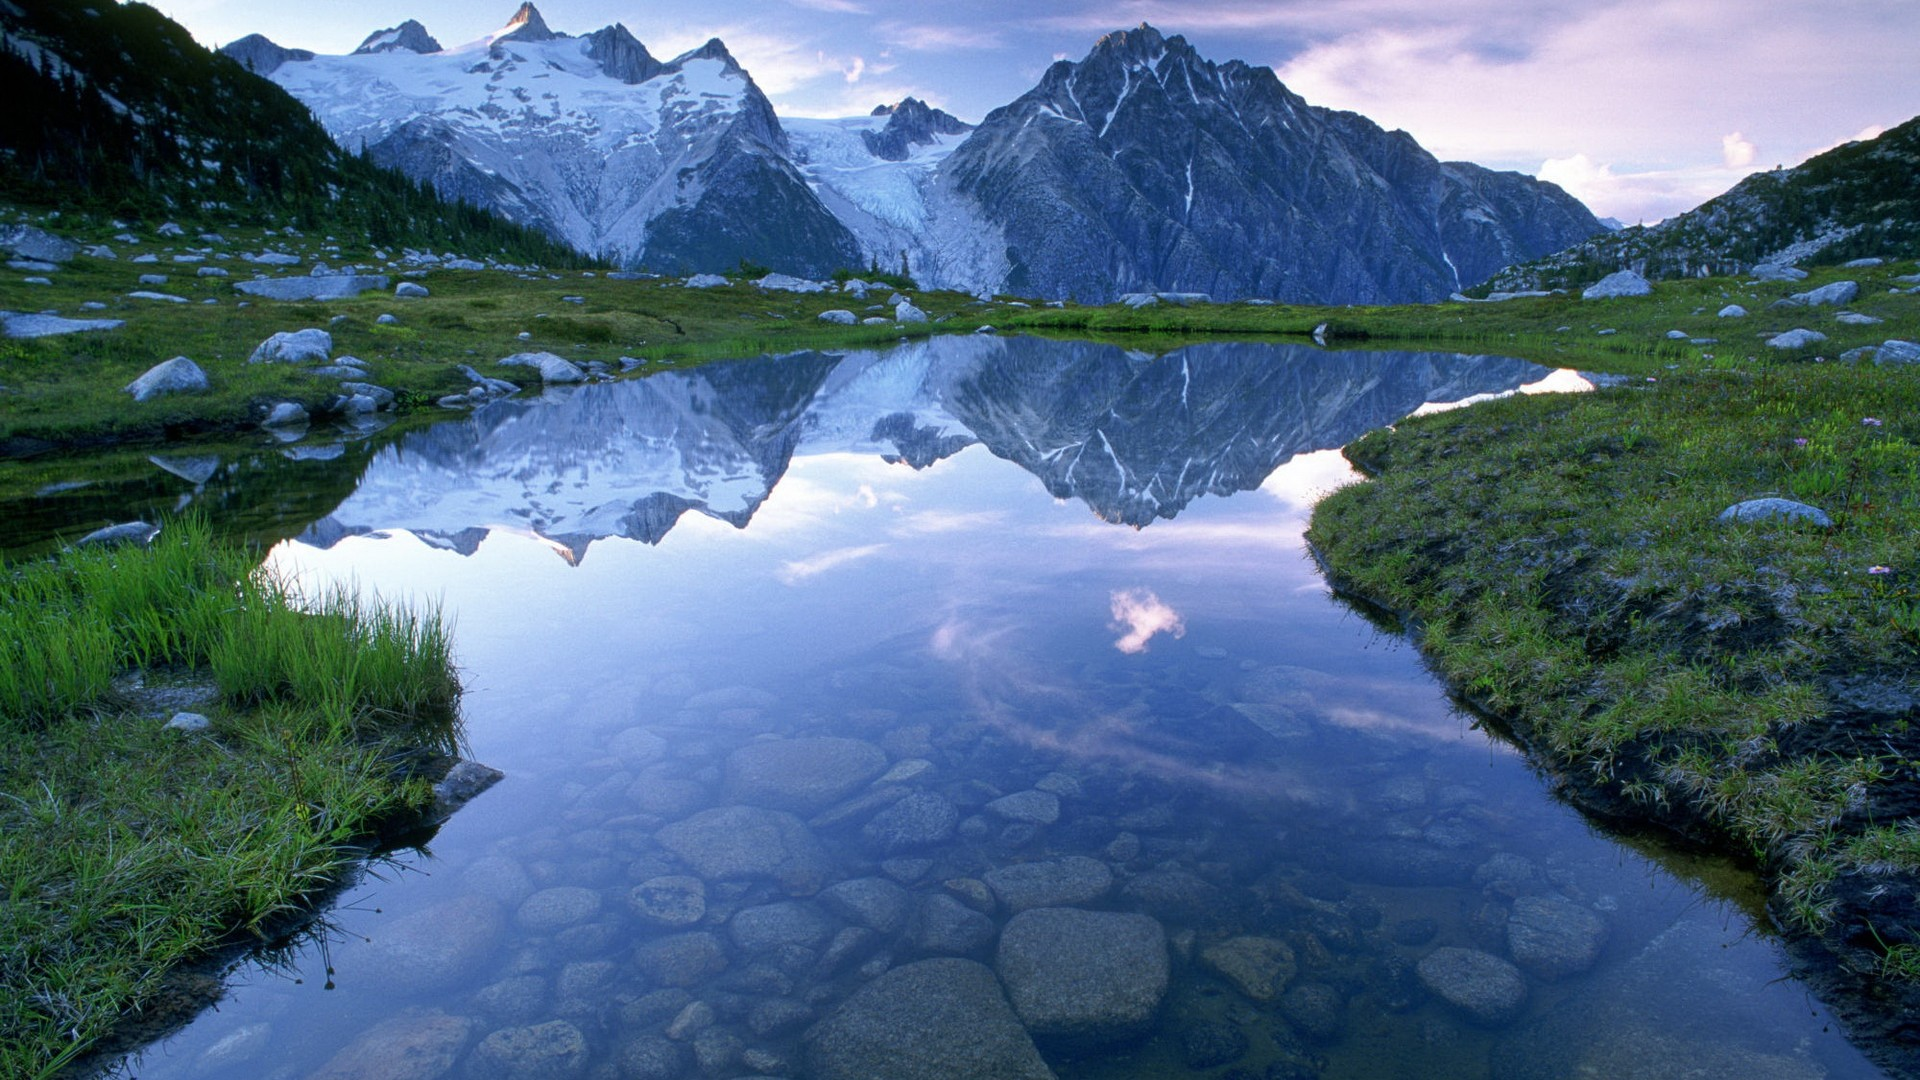 Reflection Hd Wallpaper Background Image 1920x1080 Id351640